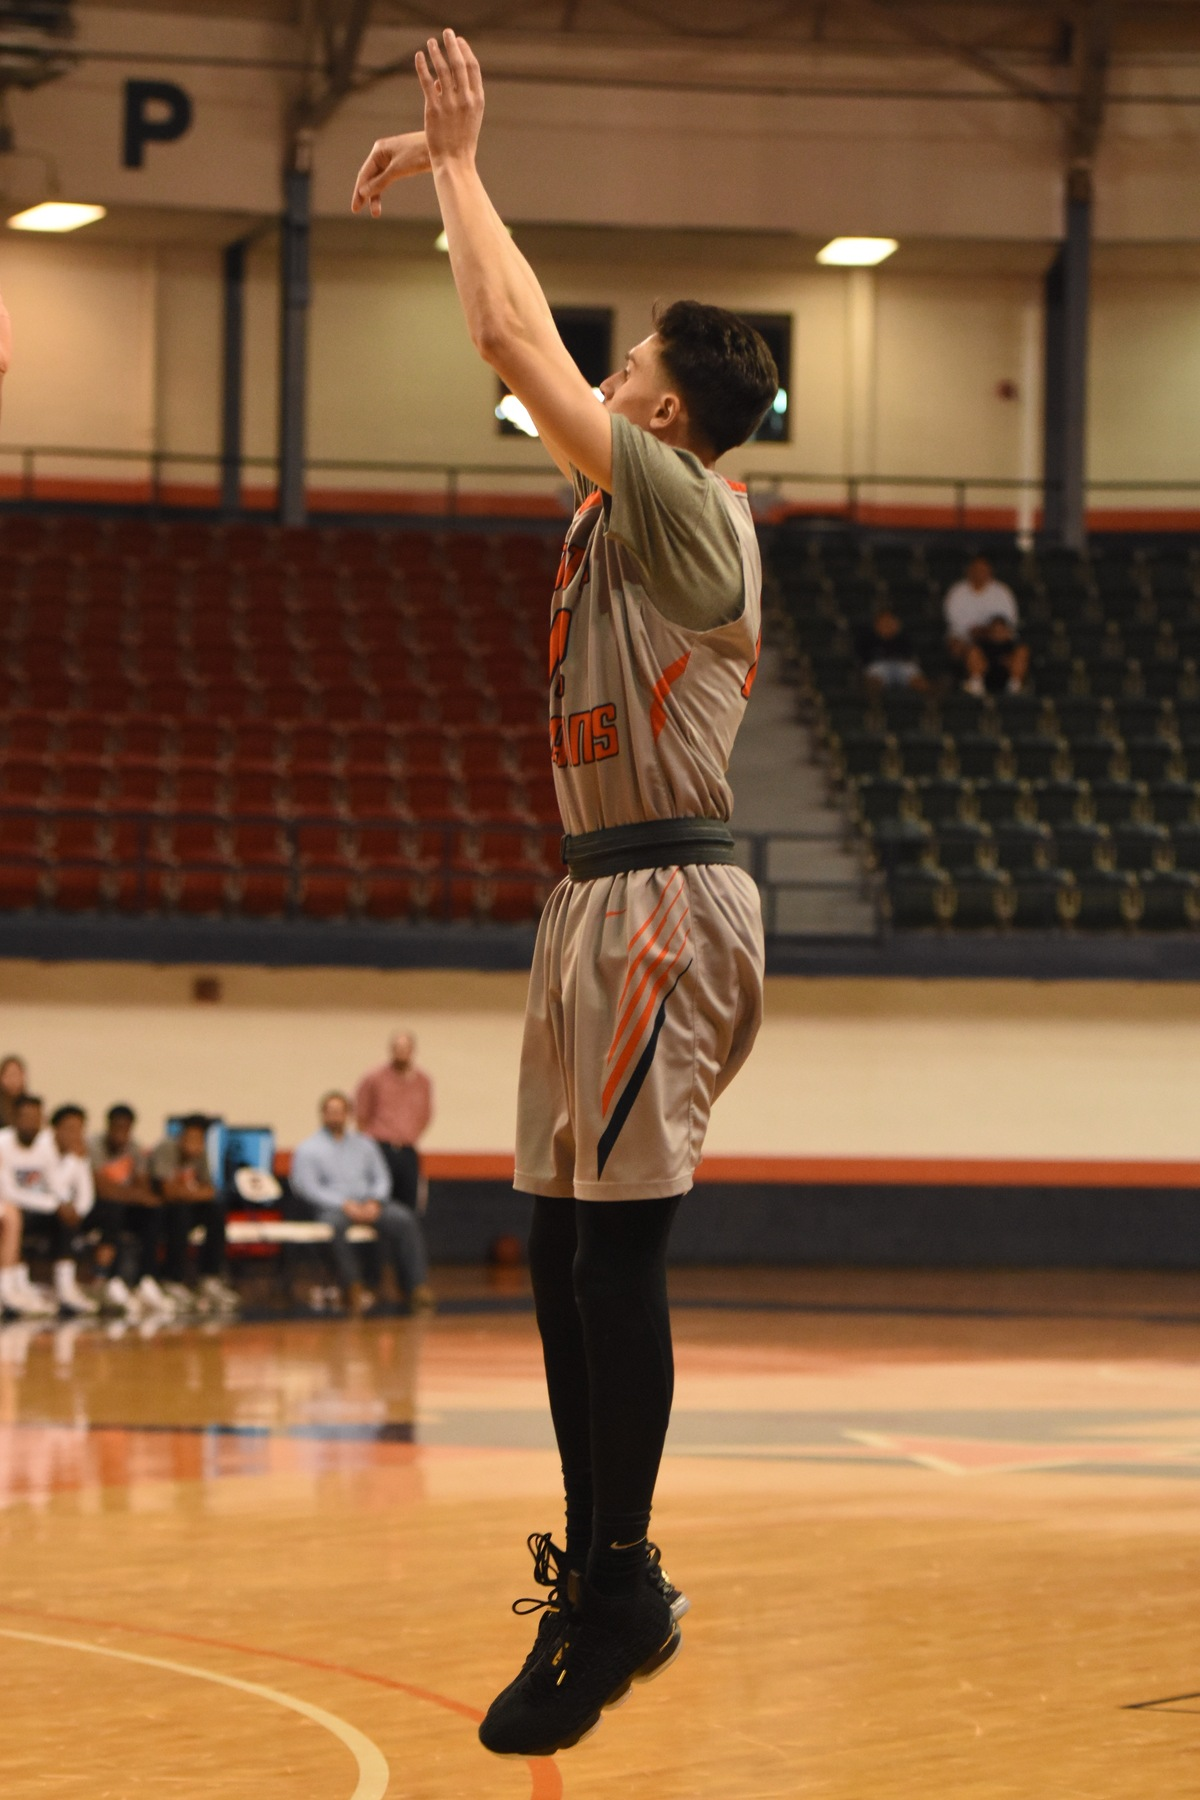 Perez sparks late surge as Texans oust Midland 75-64 Thursday night